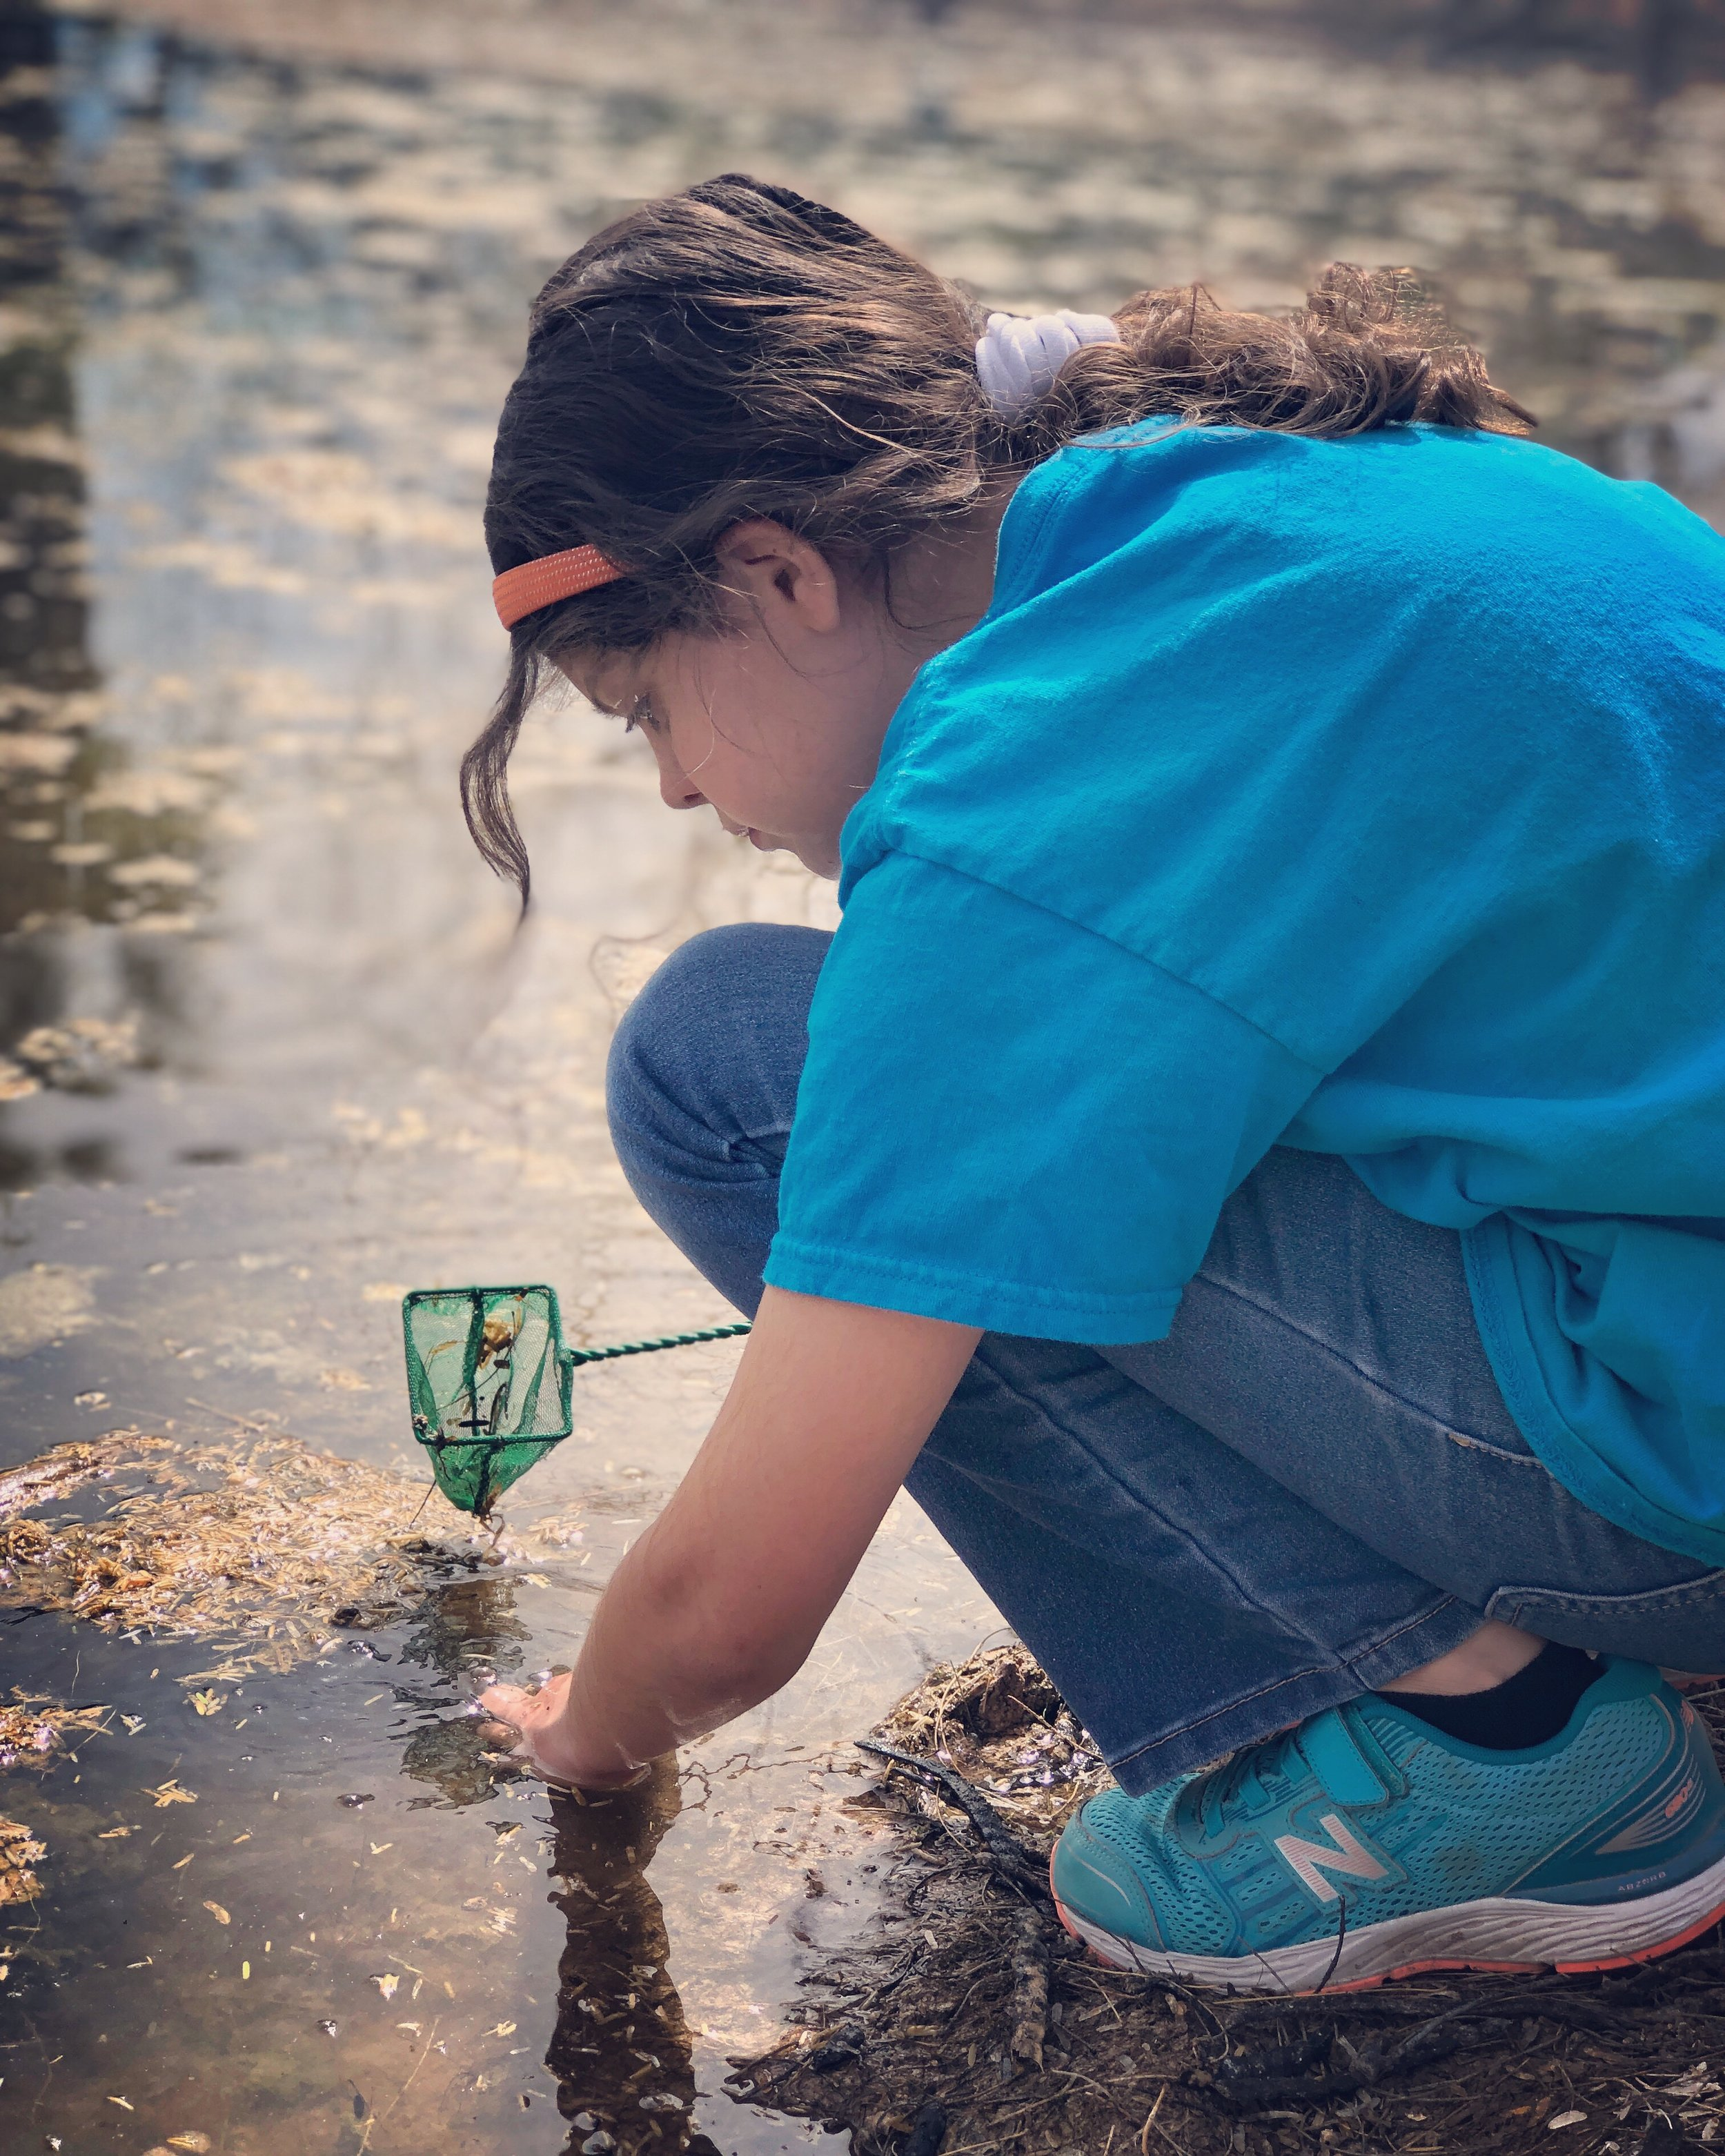 Our Mission - WildologyAZ provides youth with an enjoyable outdoor experience as a platform foreducating responsible outdoor recreation, wildlife habitat and natural resource conservationLearn More